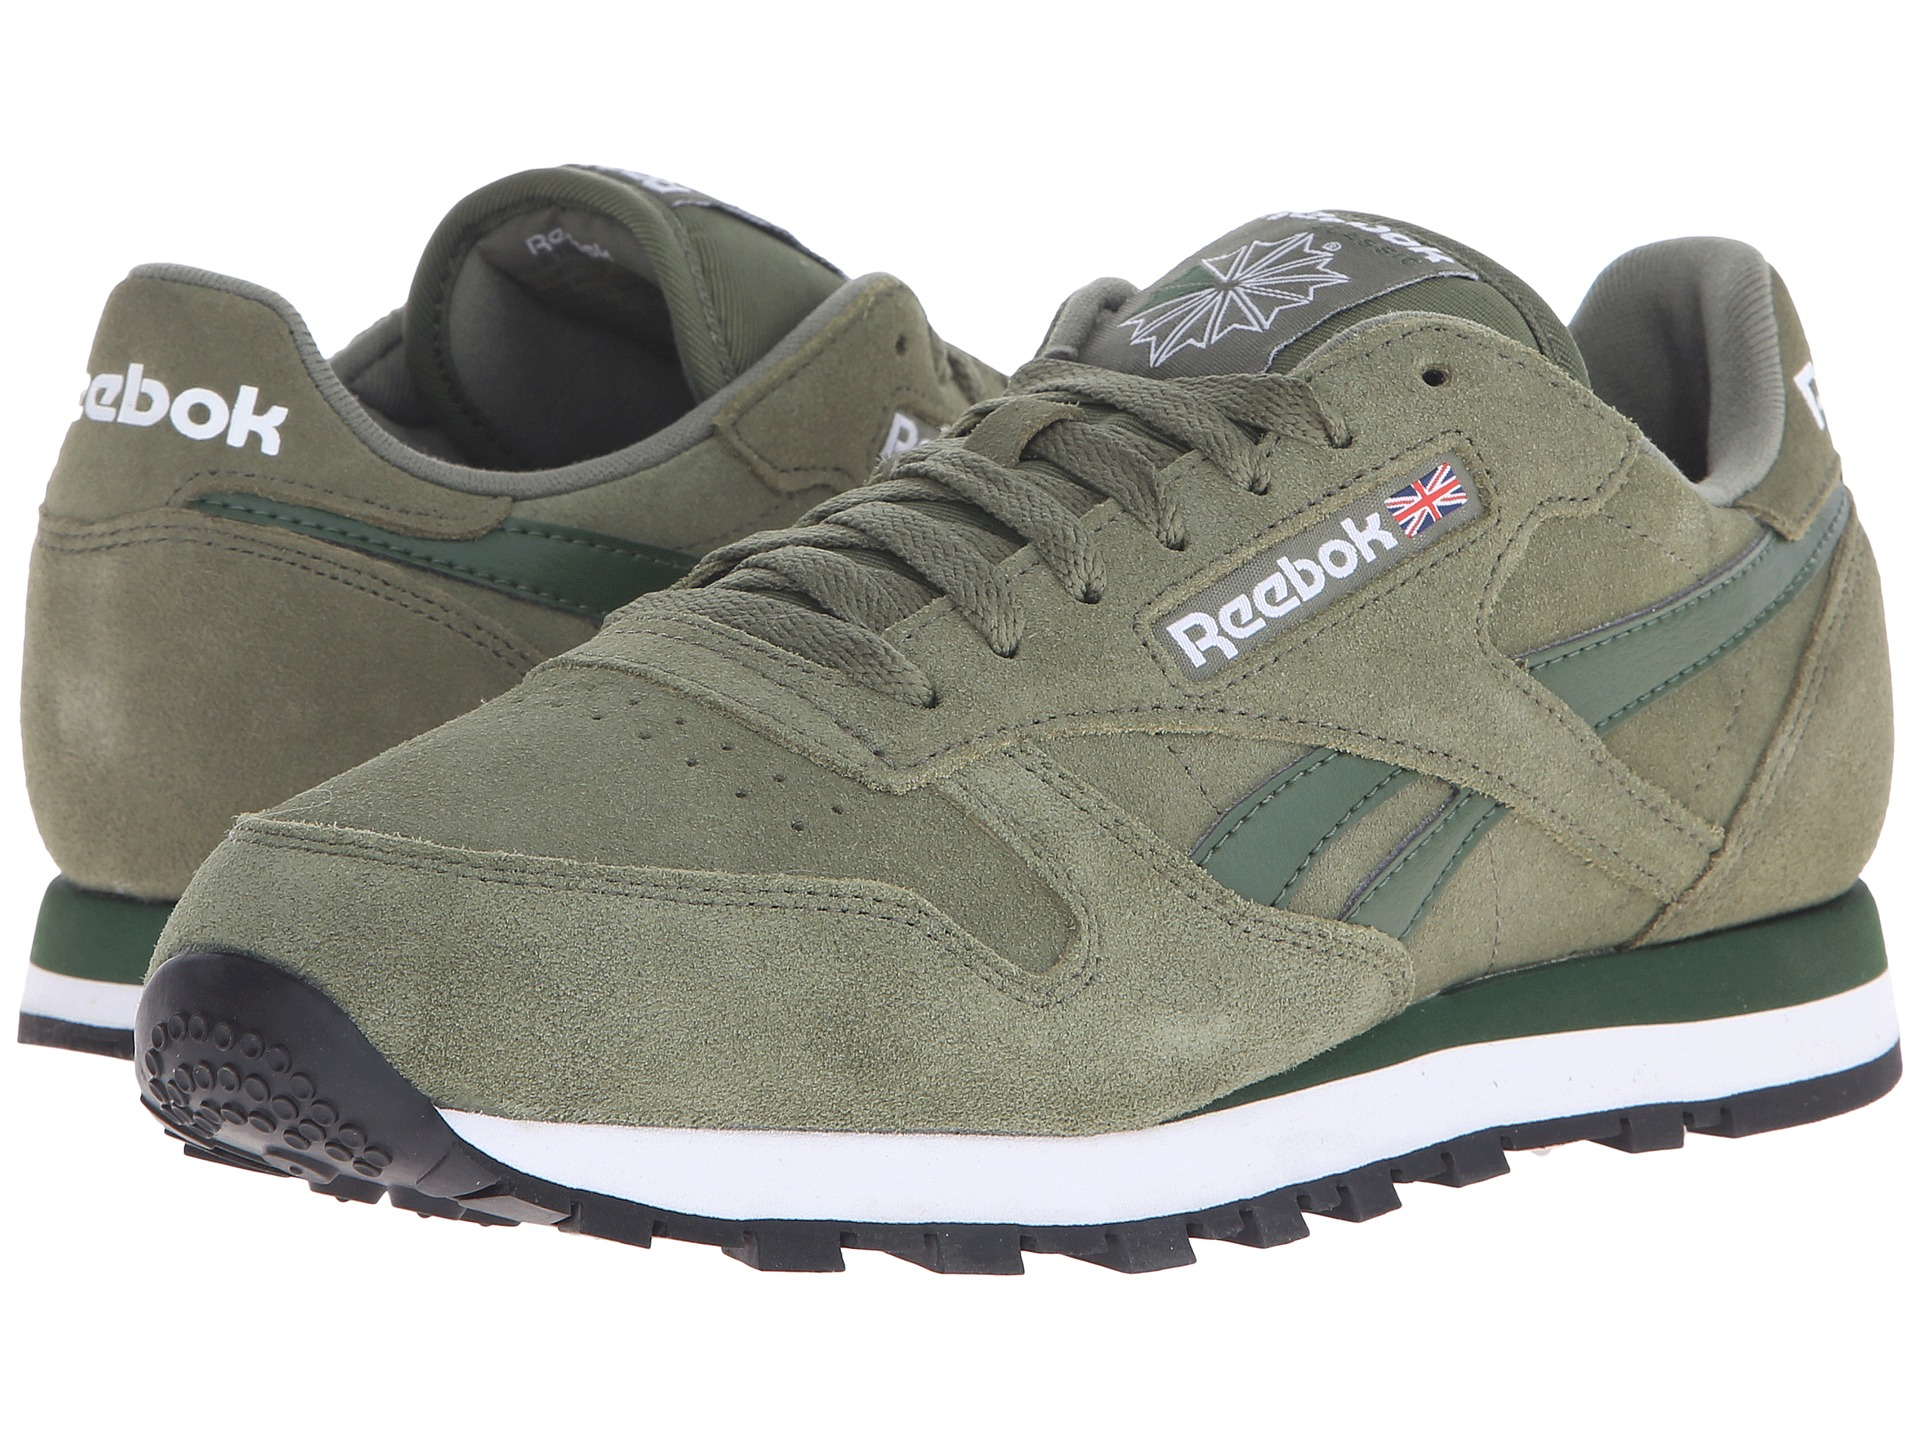 Lyst - Reebok Classic Leather Suede in Gray for Men 4611bfd00